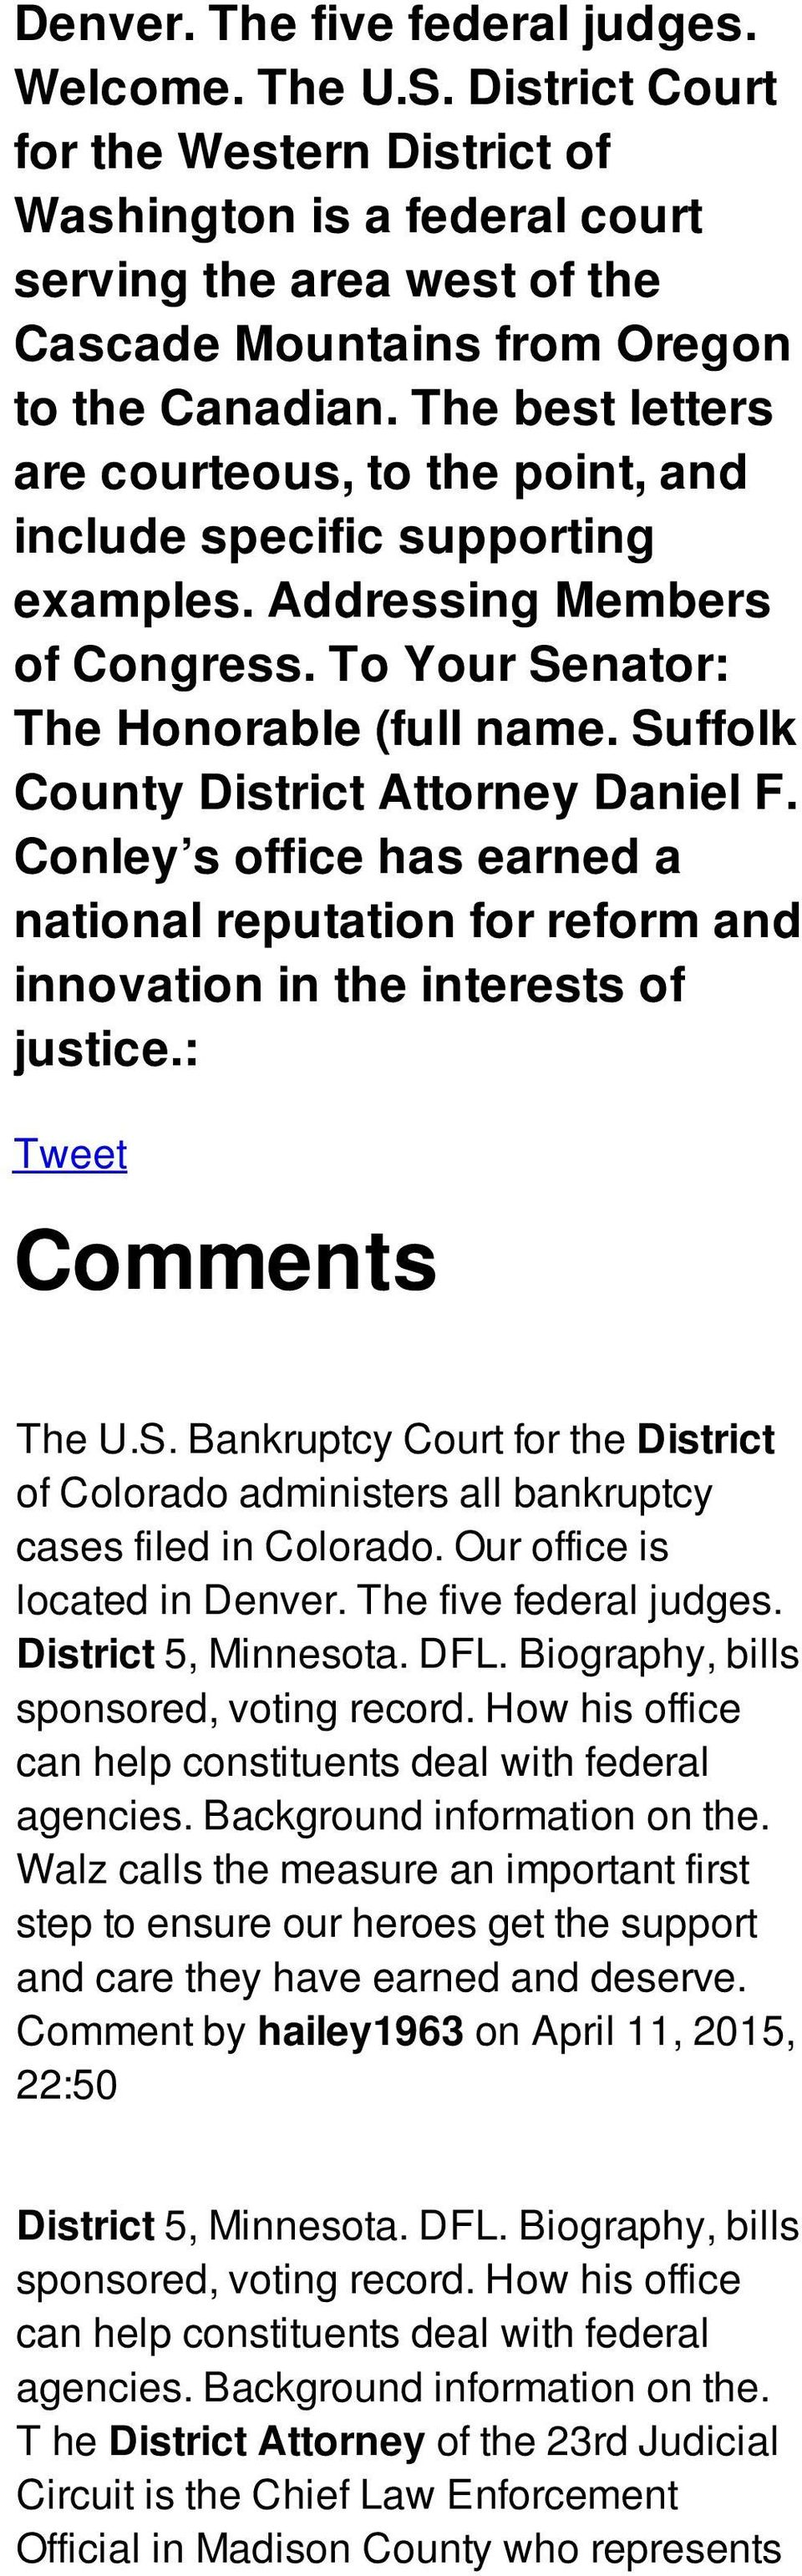 Suffolk County District Attorney Daniel F. Conley s office has earned a national reputation for reform and innovation in the interests of justice.: Tweet Comments The U.S. Bankruptcy Court for the District of Colorado administers all bankruptcy cases filed in Colorado.